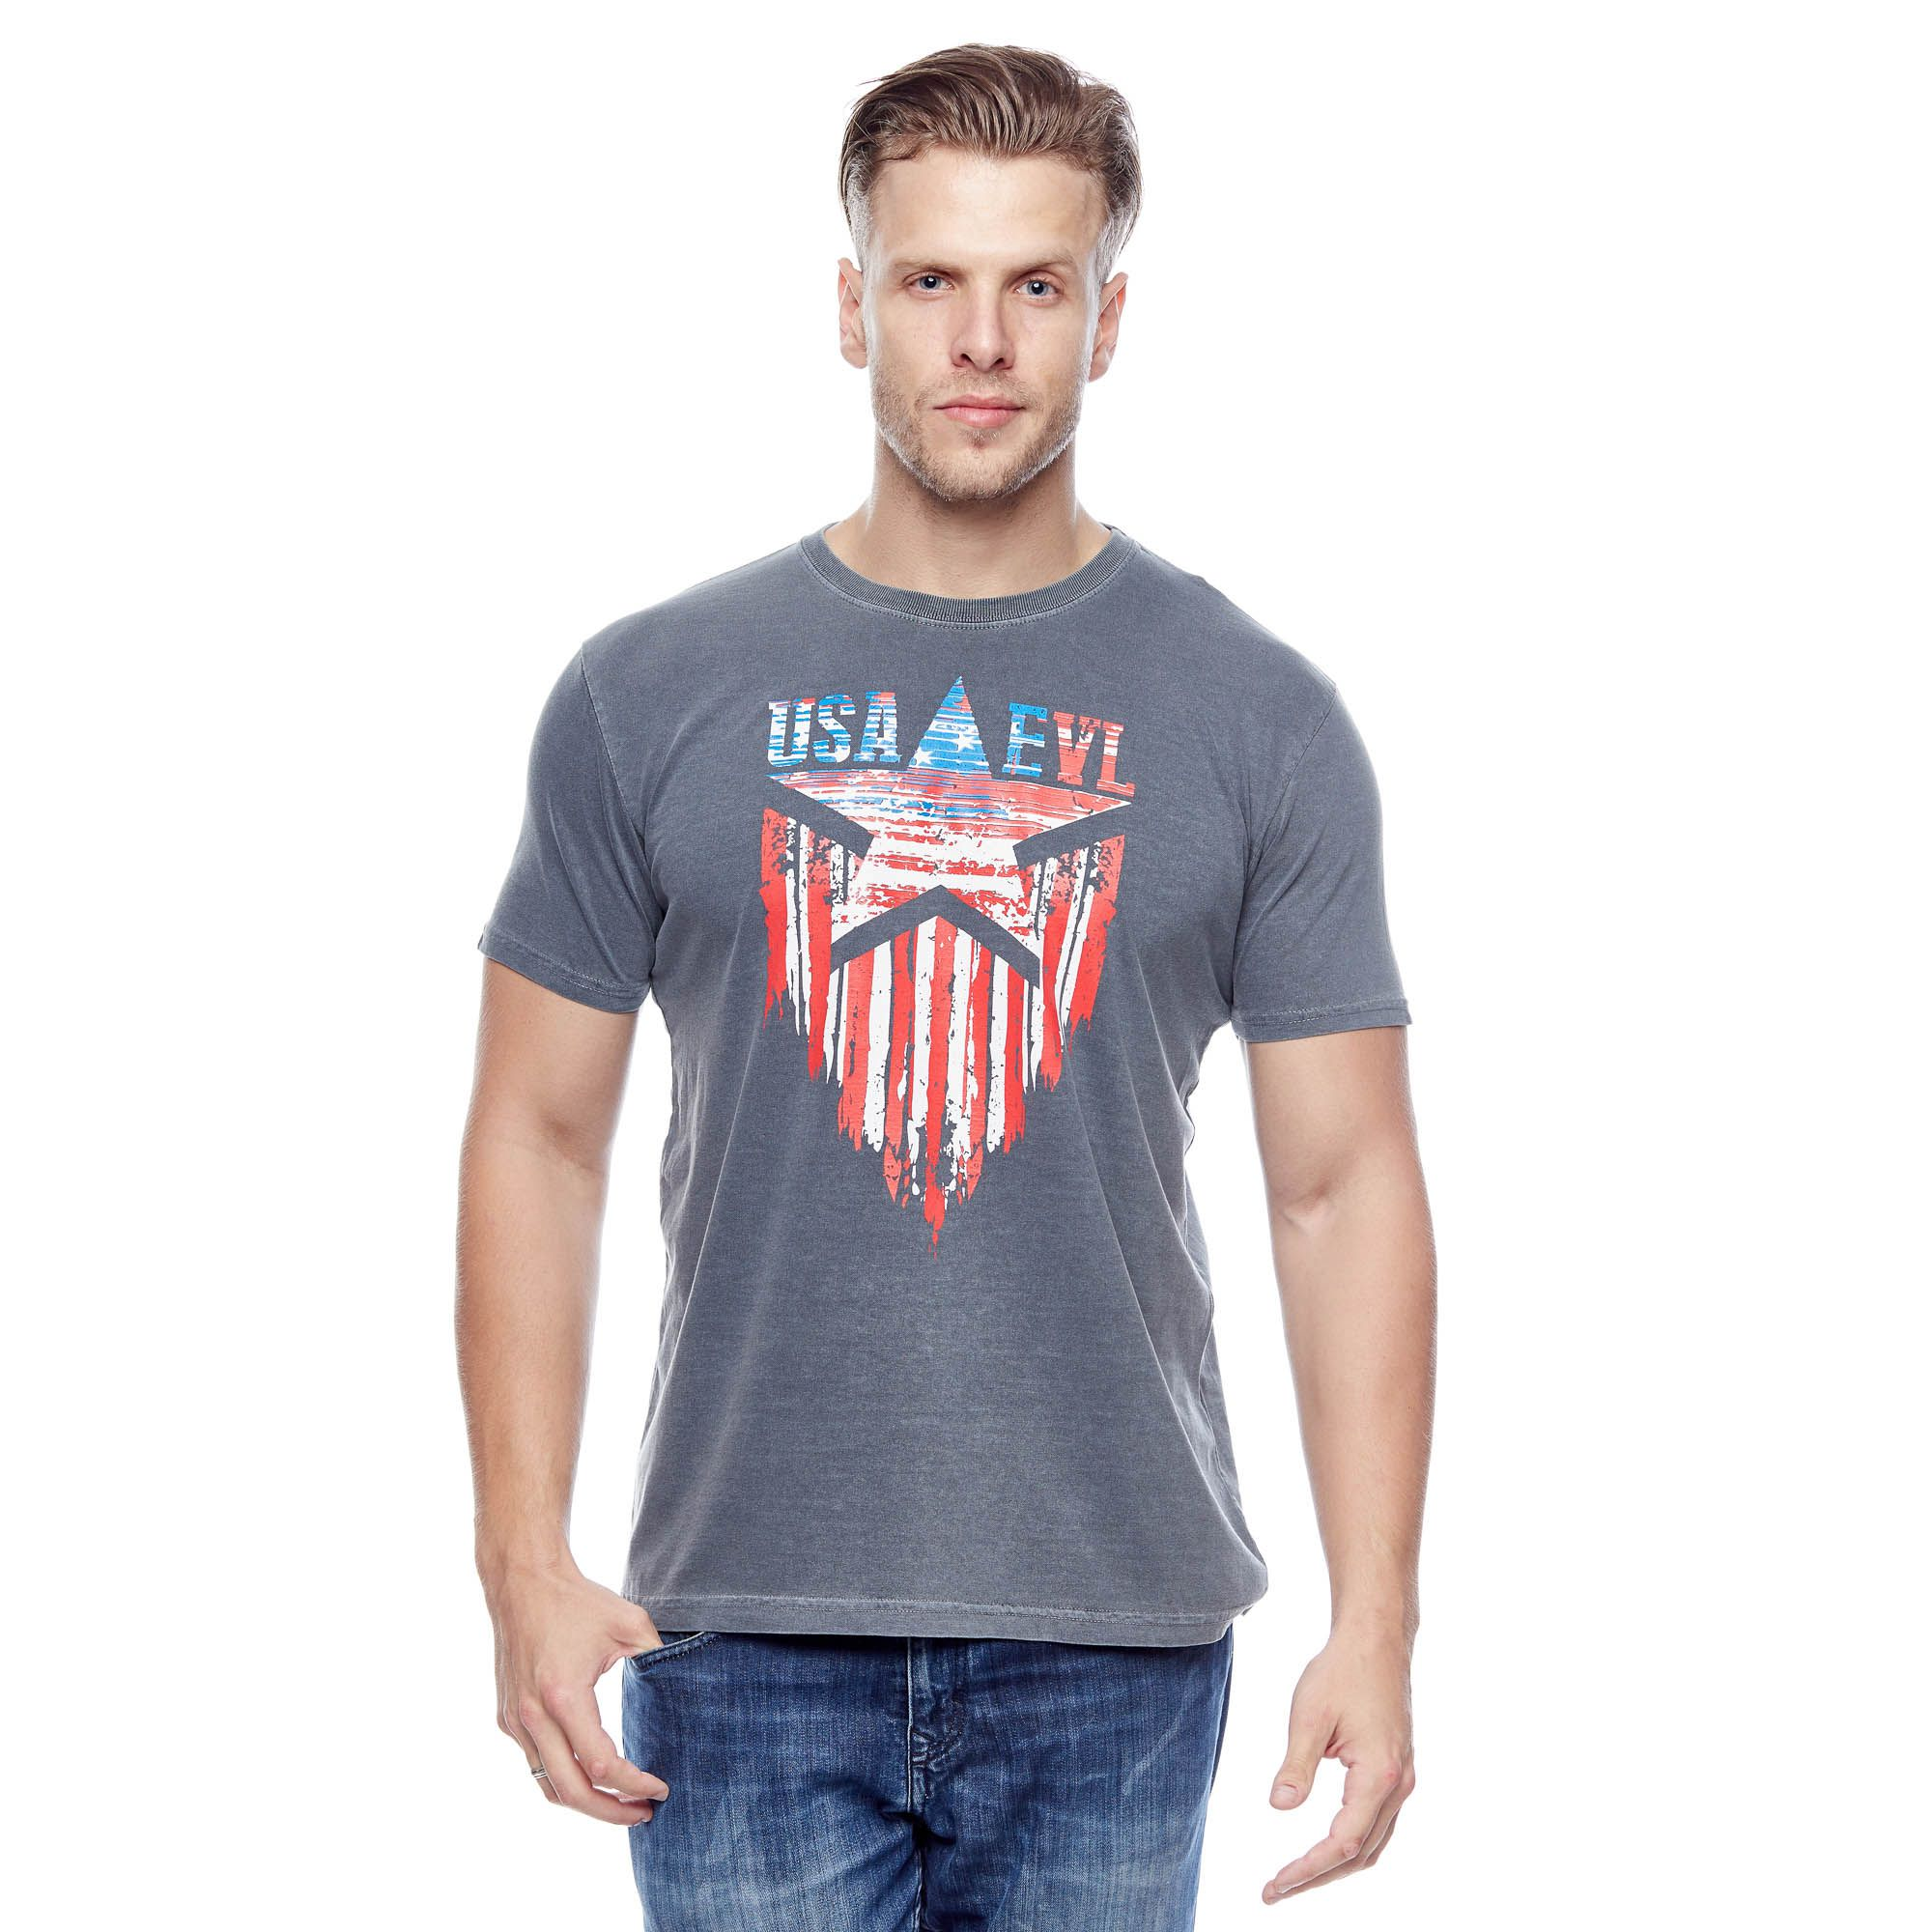 Camiseta US Star Masculina Evolvee